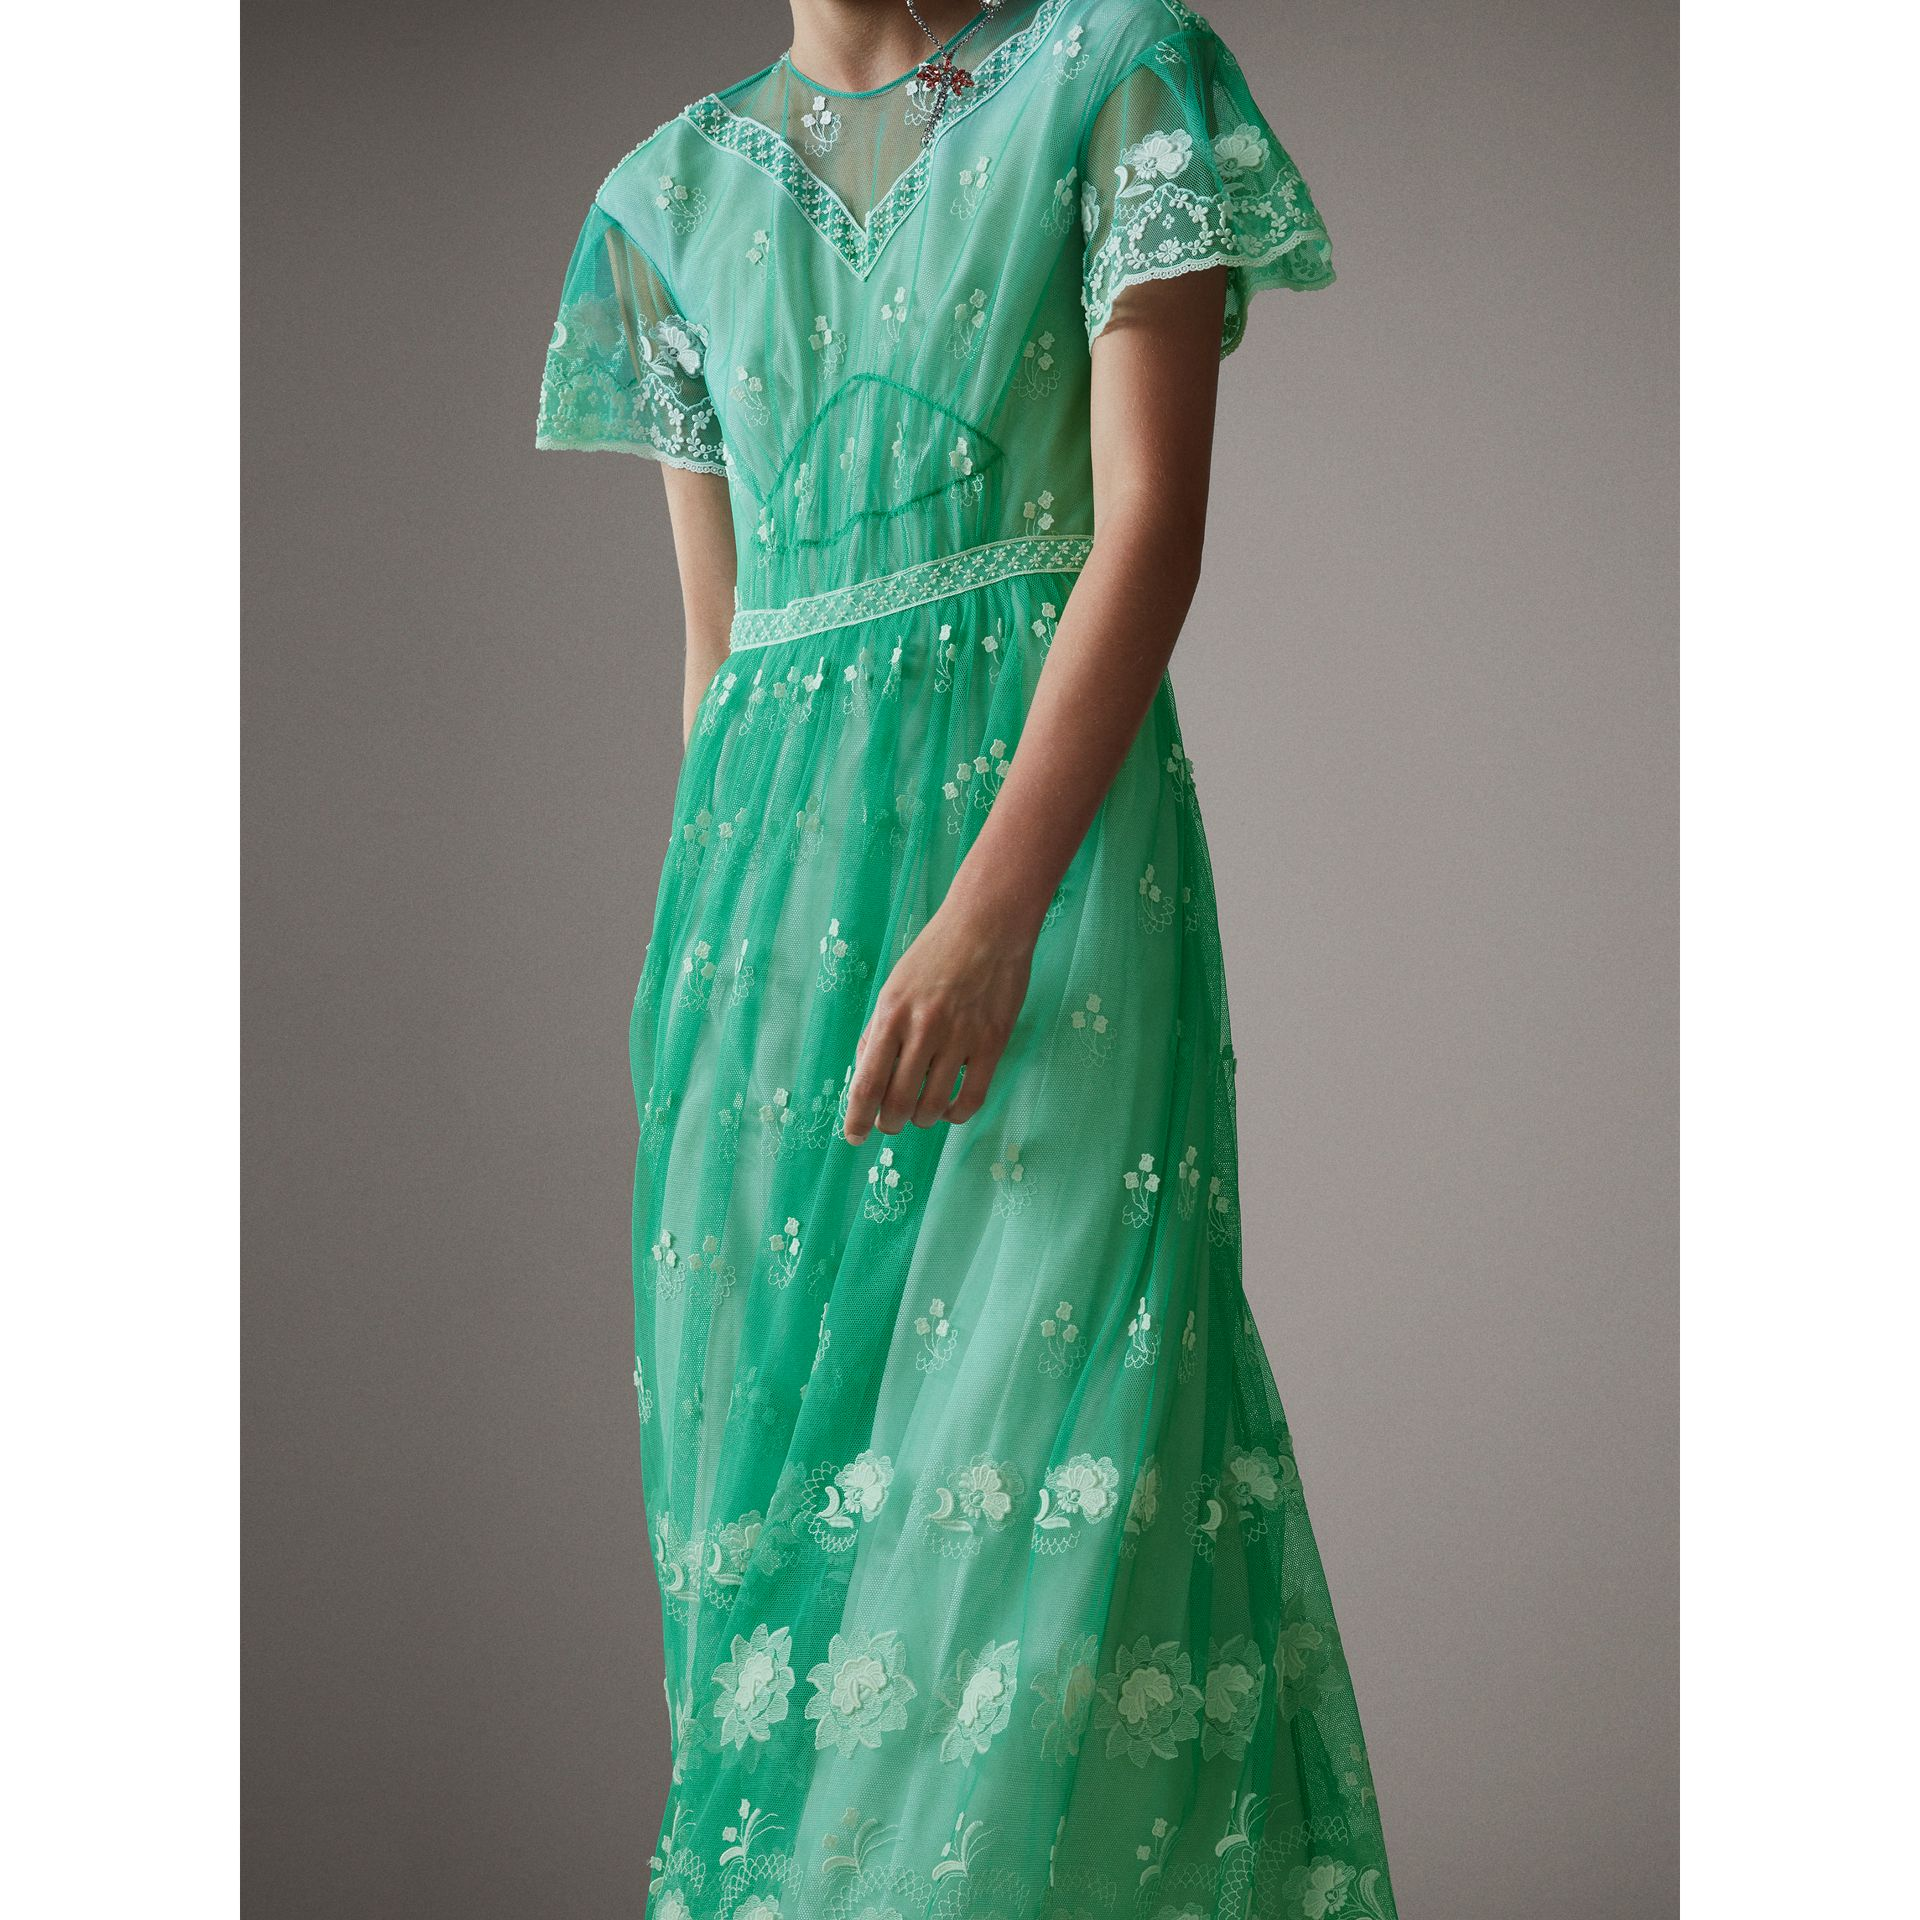 Embroidered Tulle Gathered Dress in Aqua Green/white - Women | Burberry - gallery image 2